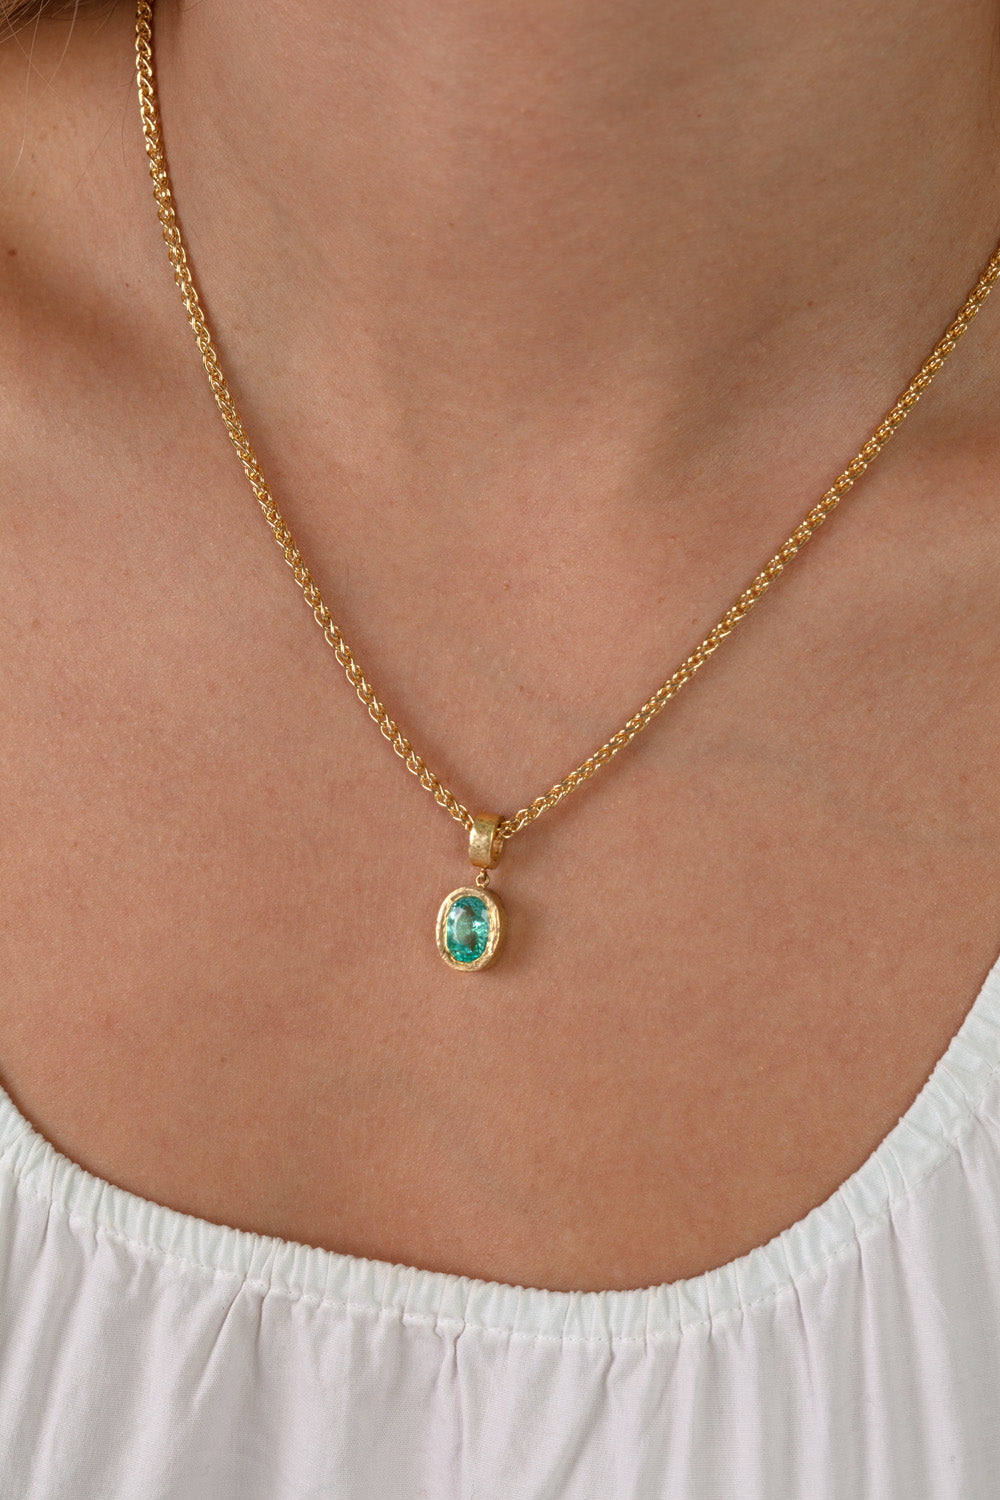 Hammered Texture Paraiba Tourmaline Necklace